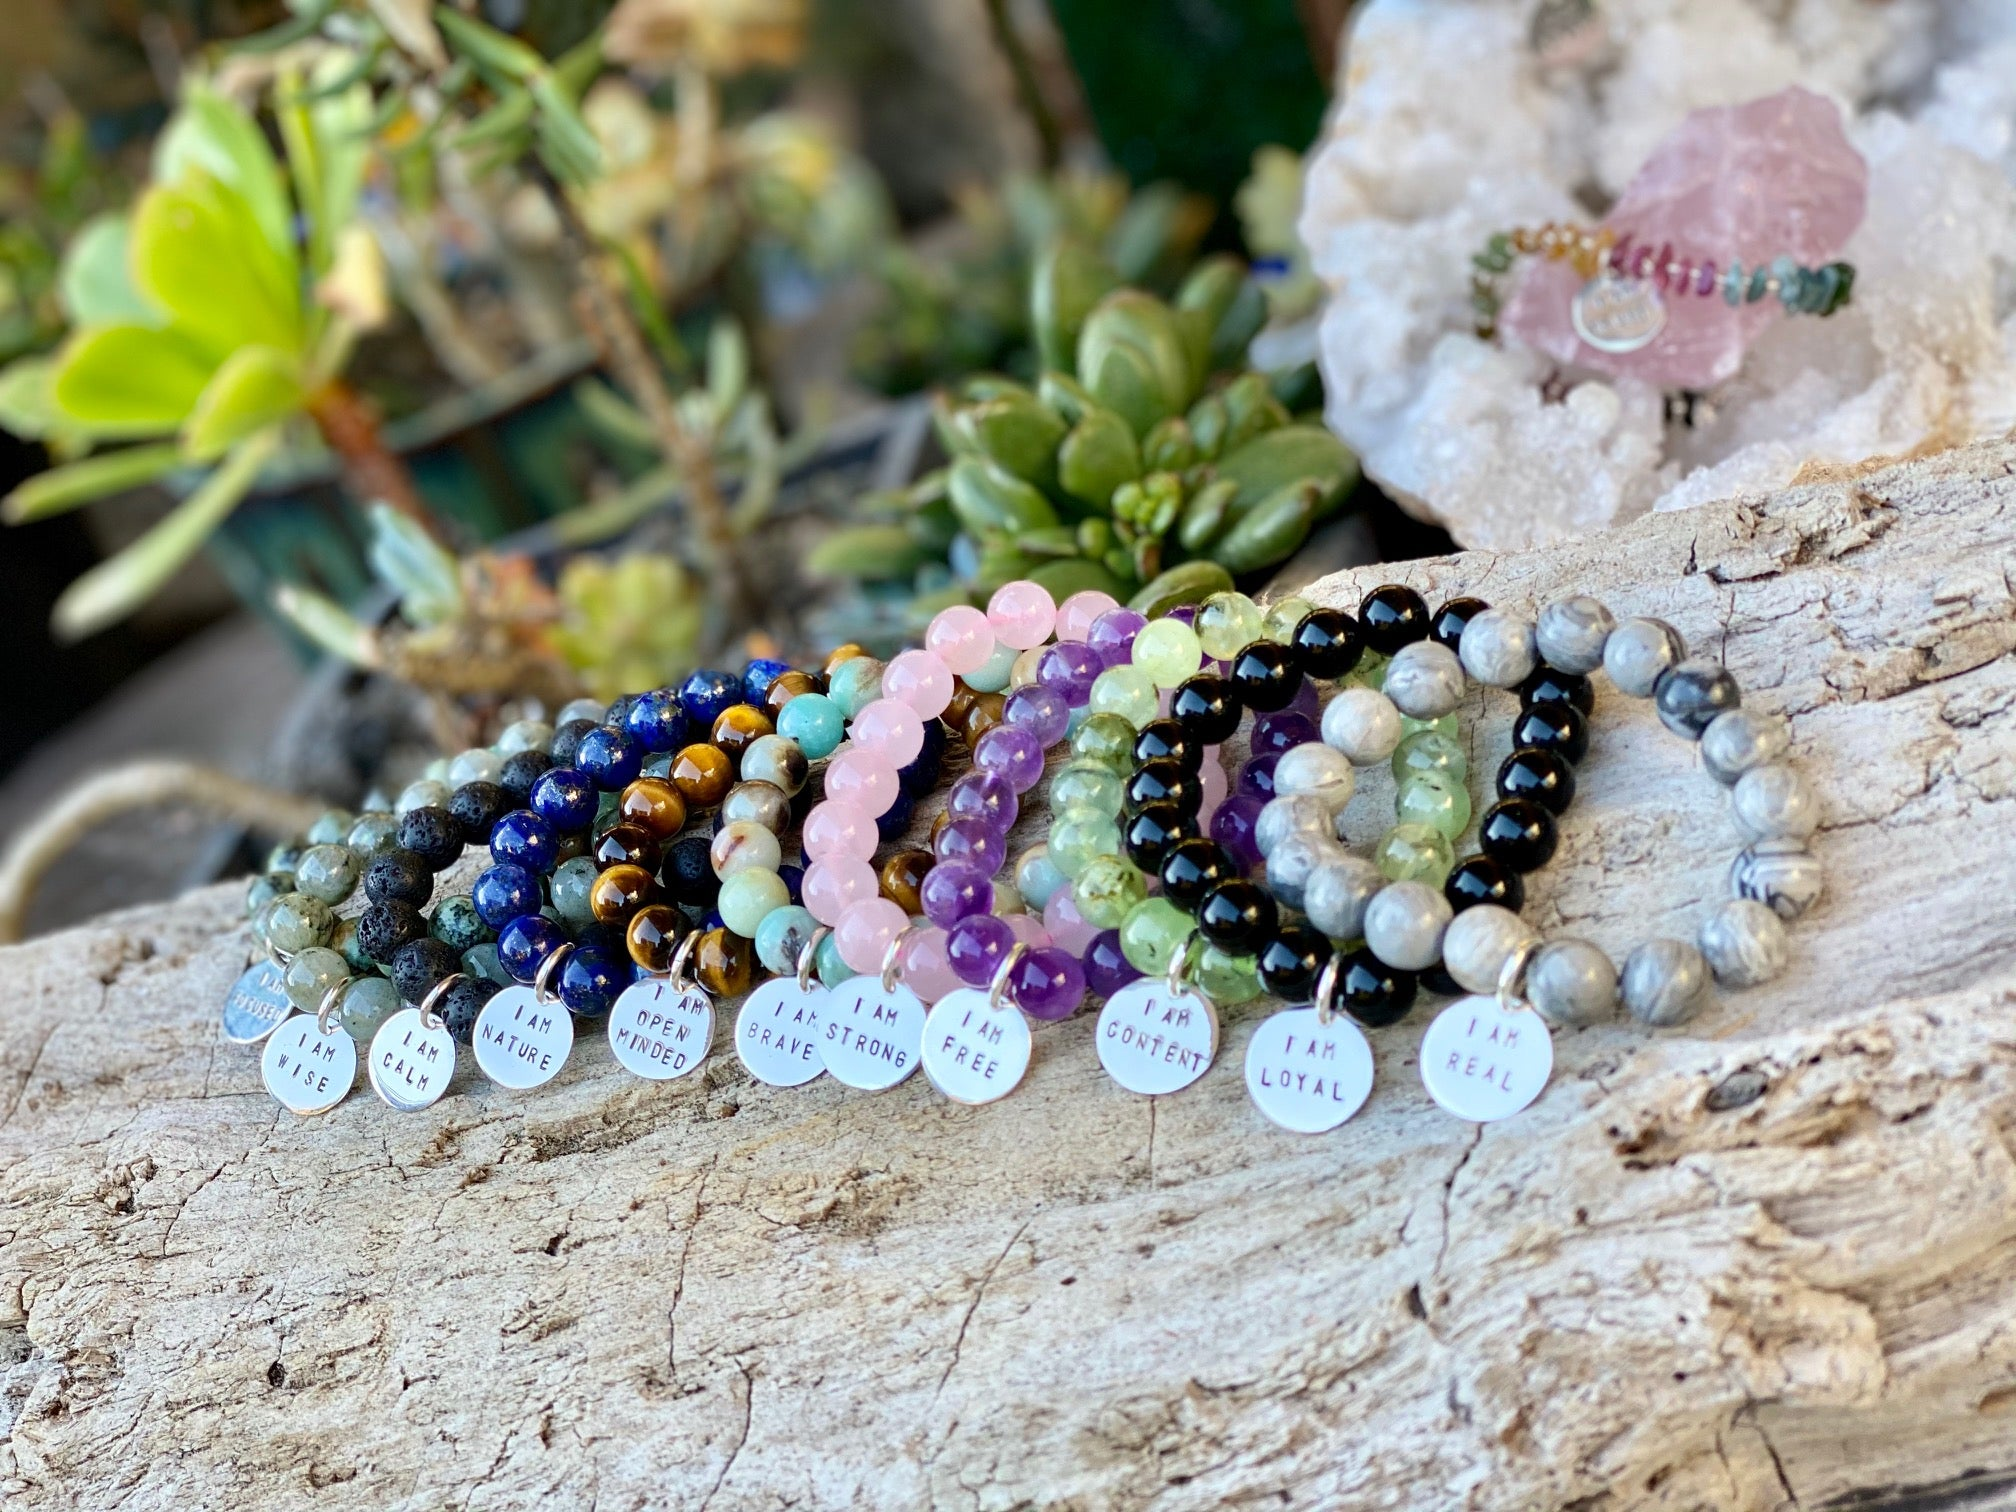 Energy Healing Crystal Jewelry to support change that comes from within